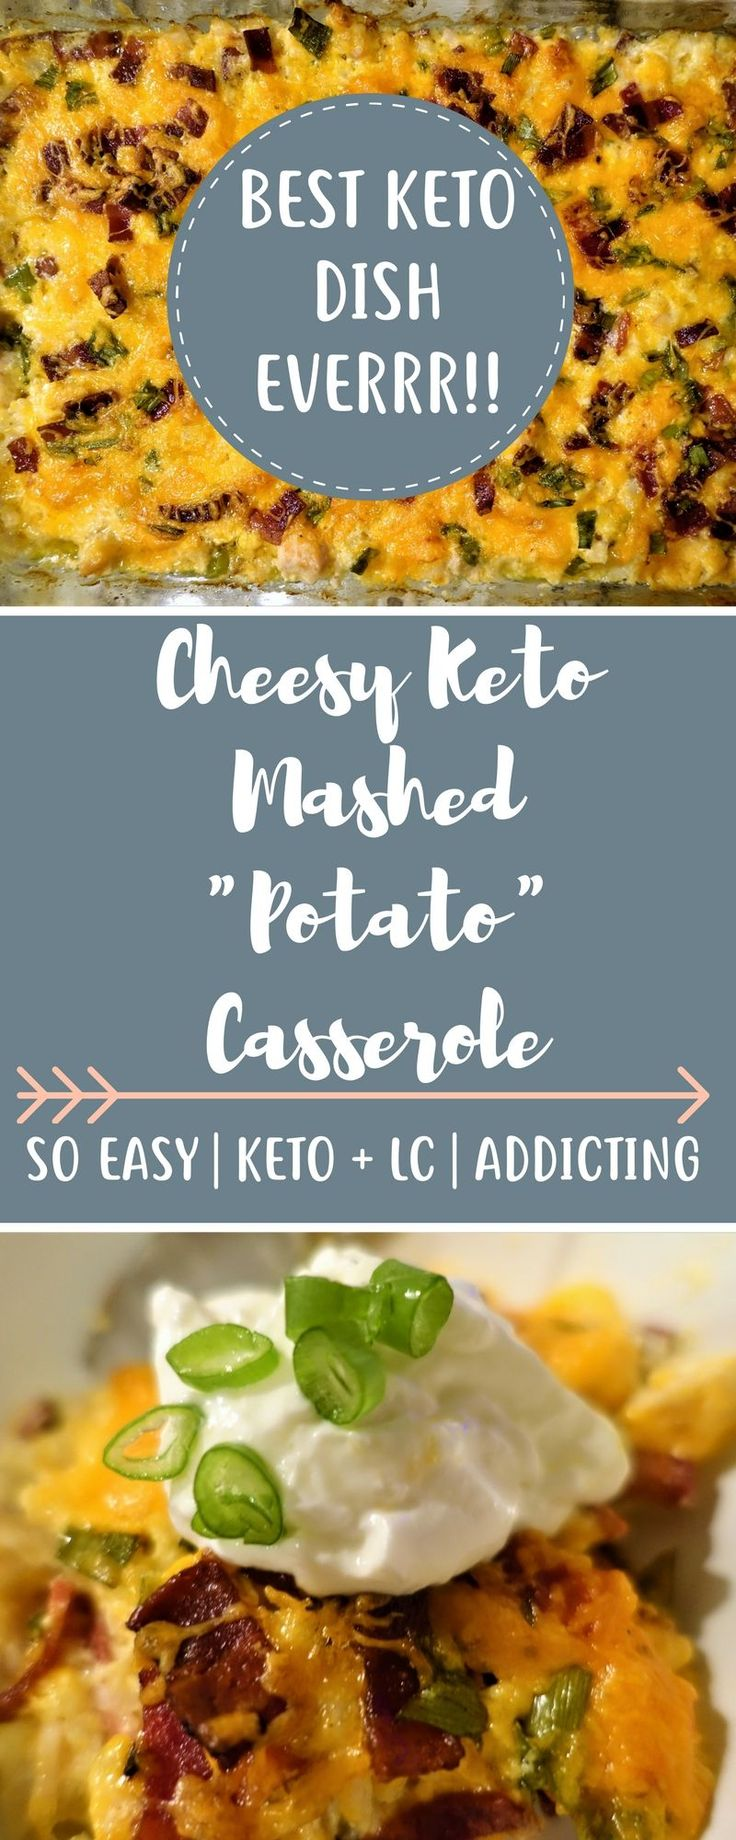 This is the most addicting thing I've ever eaten. Even my non-keto and non-low-carb friends LOVE this...SO EASY AND DELICIOUS - MAKE THIS TODAY